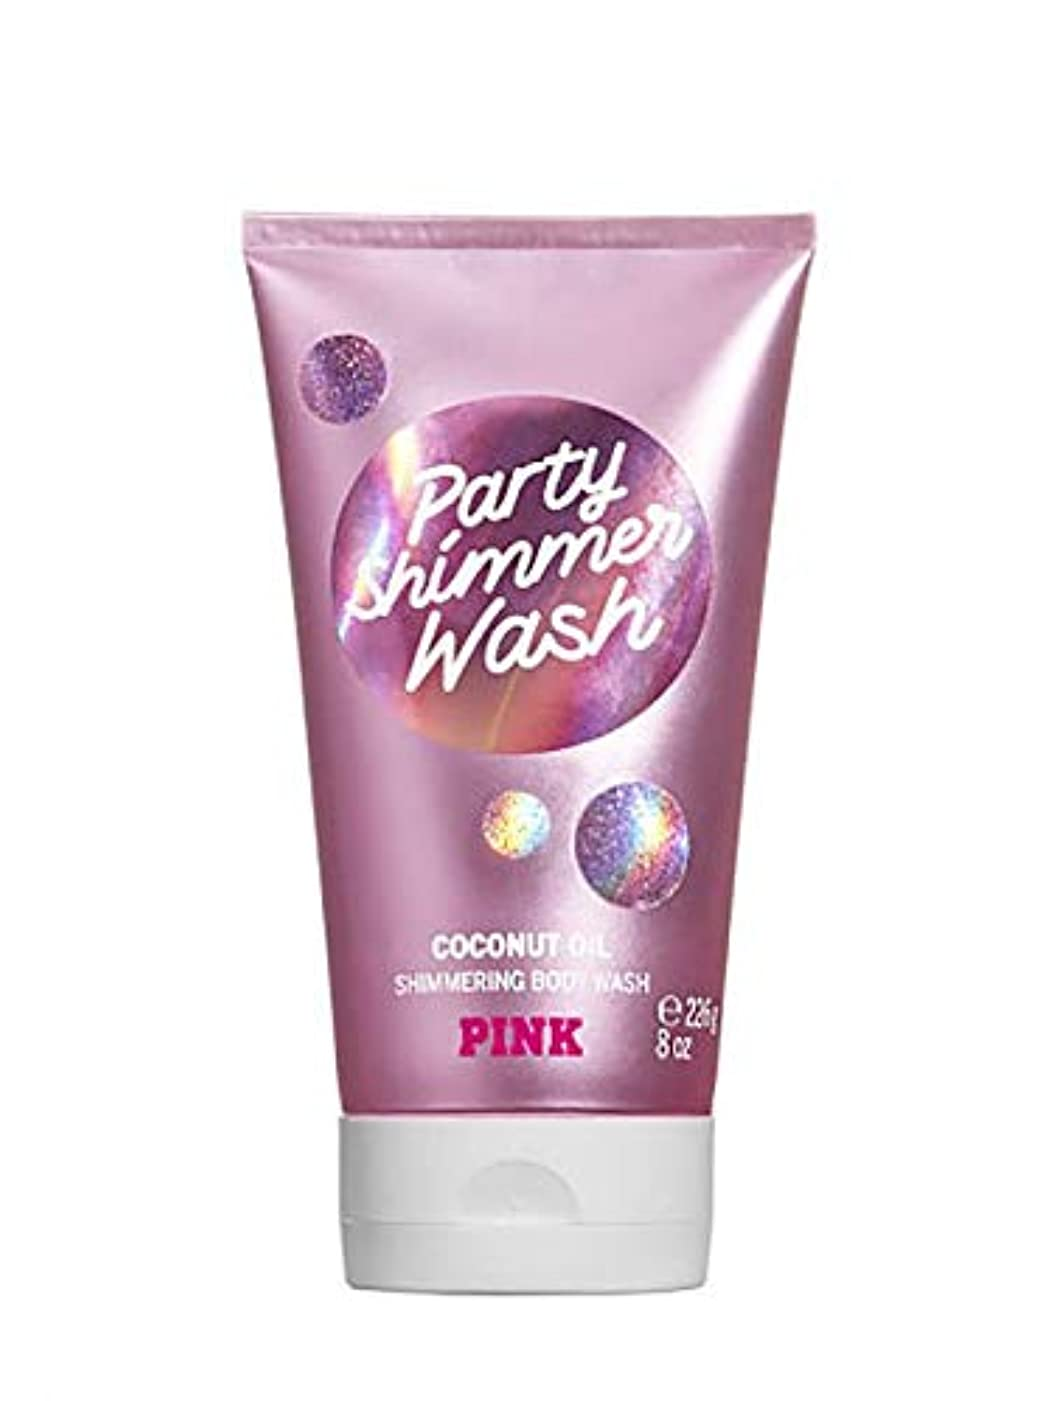 VICTORIA'S SECRET Party Shimmer Coconut Oil Shimmering Body Wash